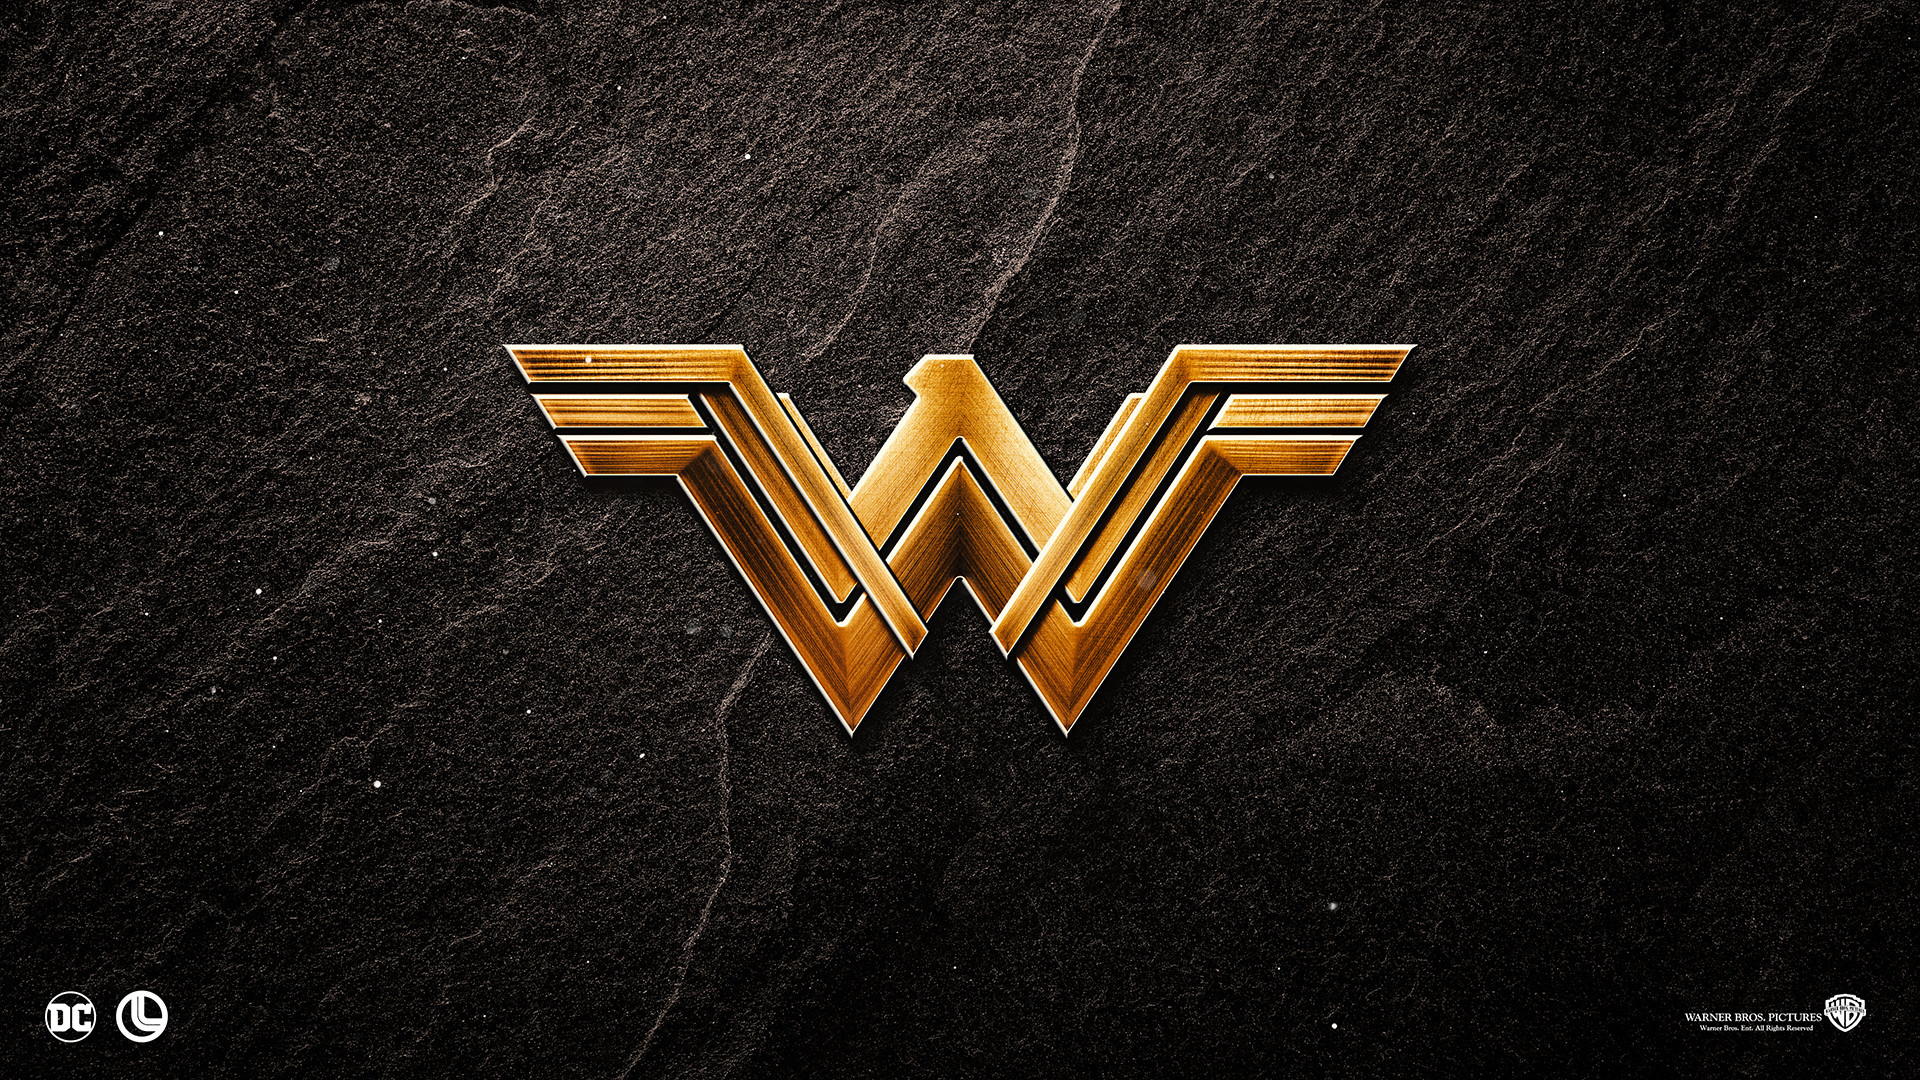 1920x1080  Downlaod Wallpaper Wonder Woman Logo Wallpaper Hd, Image, Picture